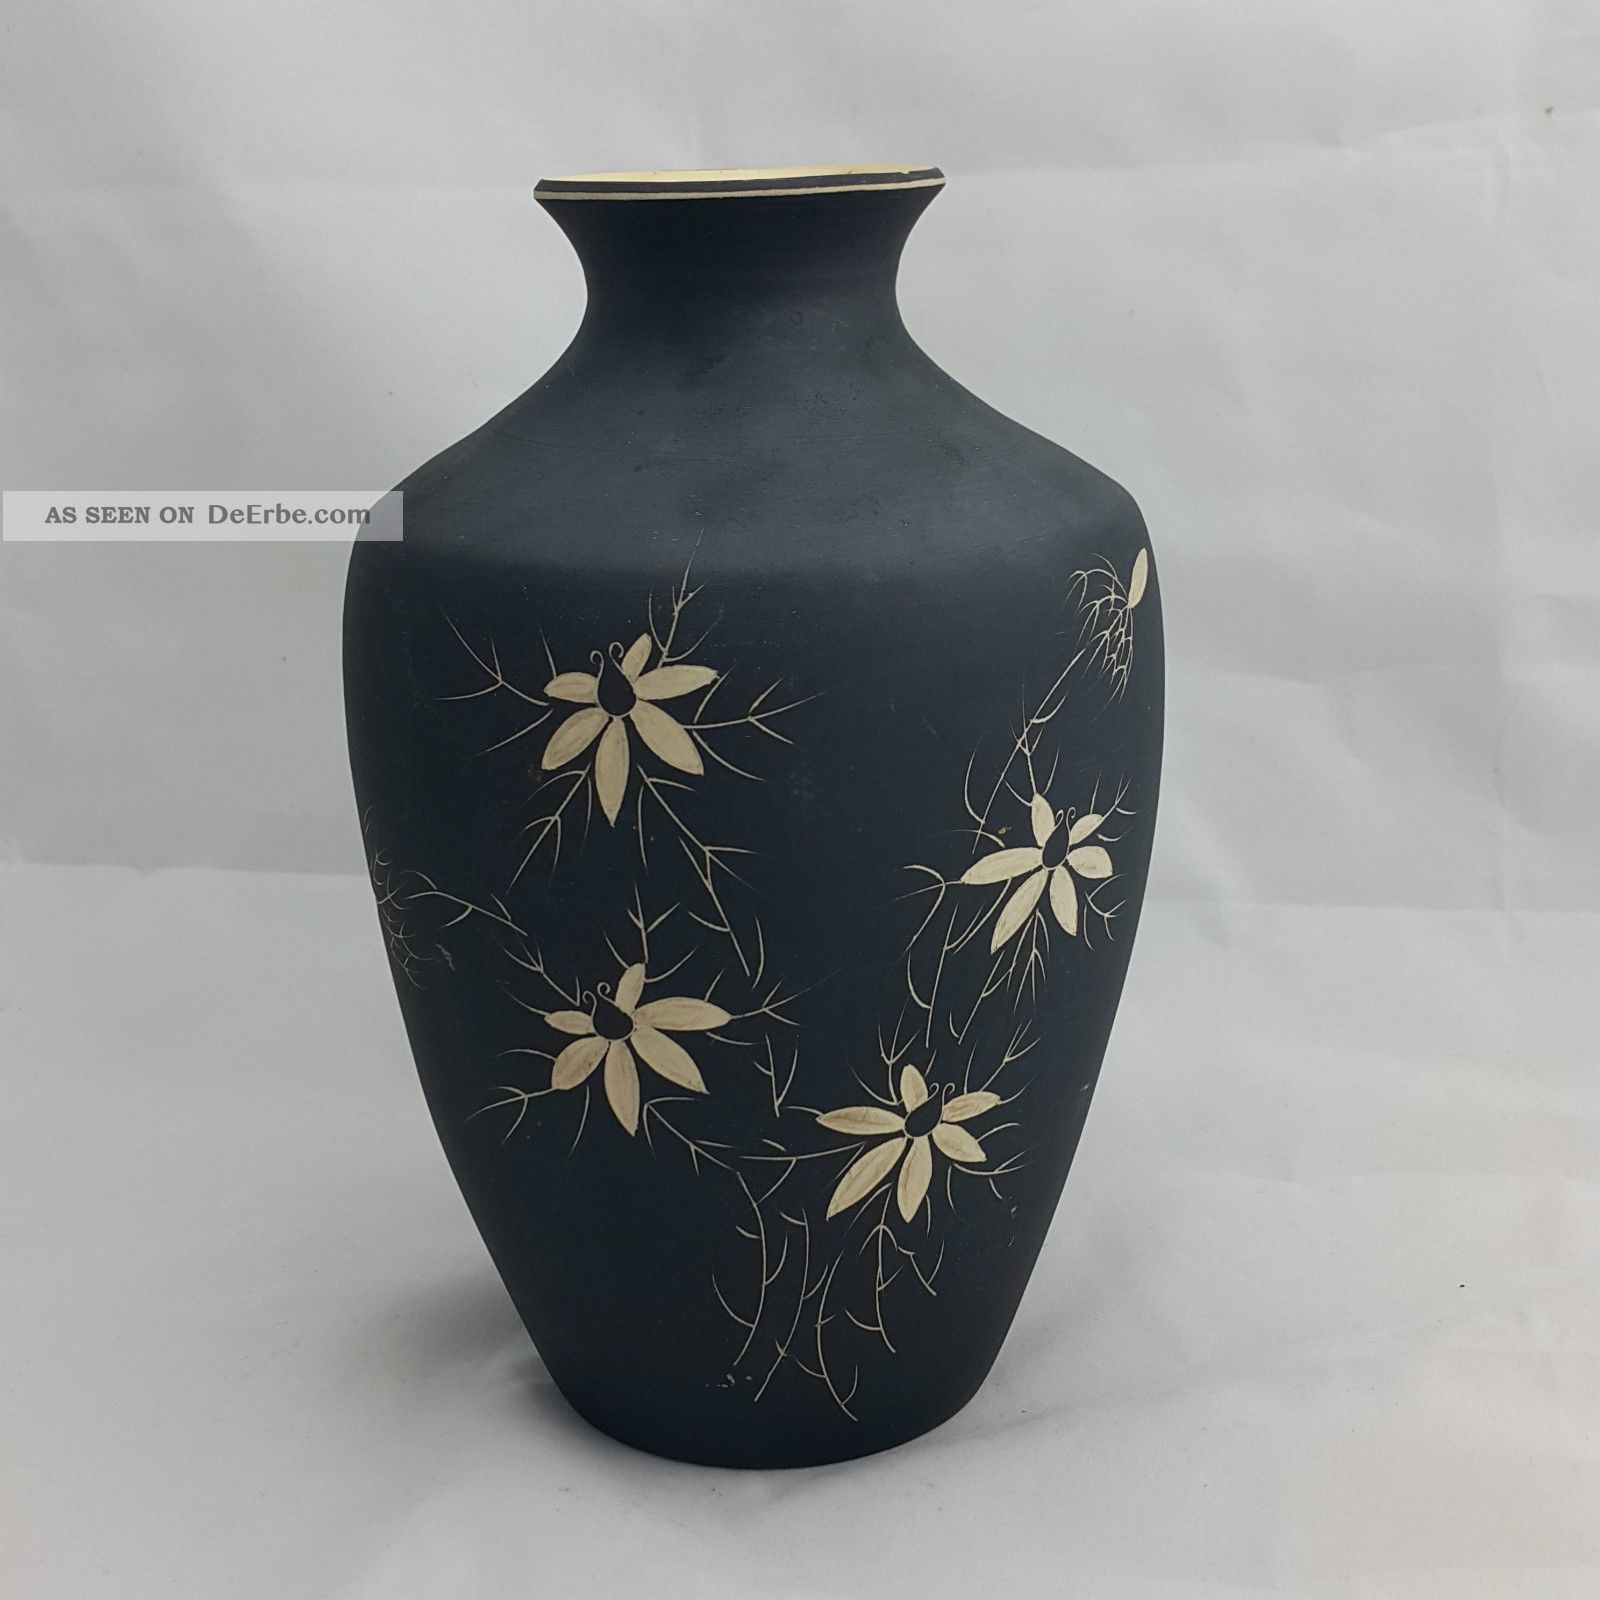 vintage keramik vase schwarz matt bl tendekor handarbeit tolle form h he 22 5cm. Black Bedroom Furniture Sets. Home Design Ideas